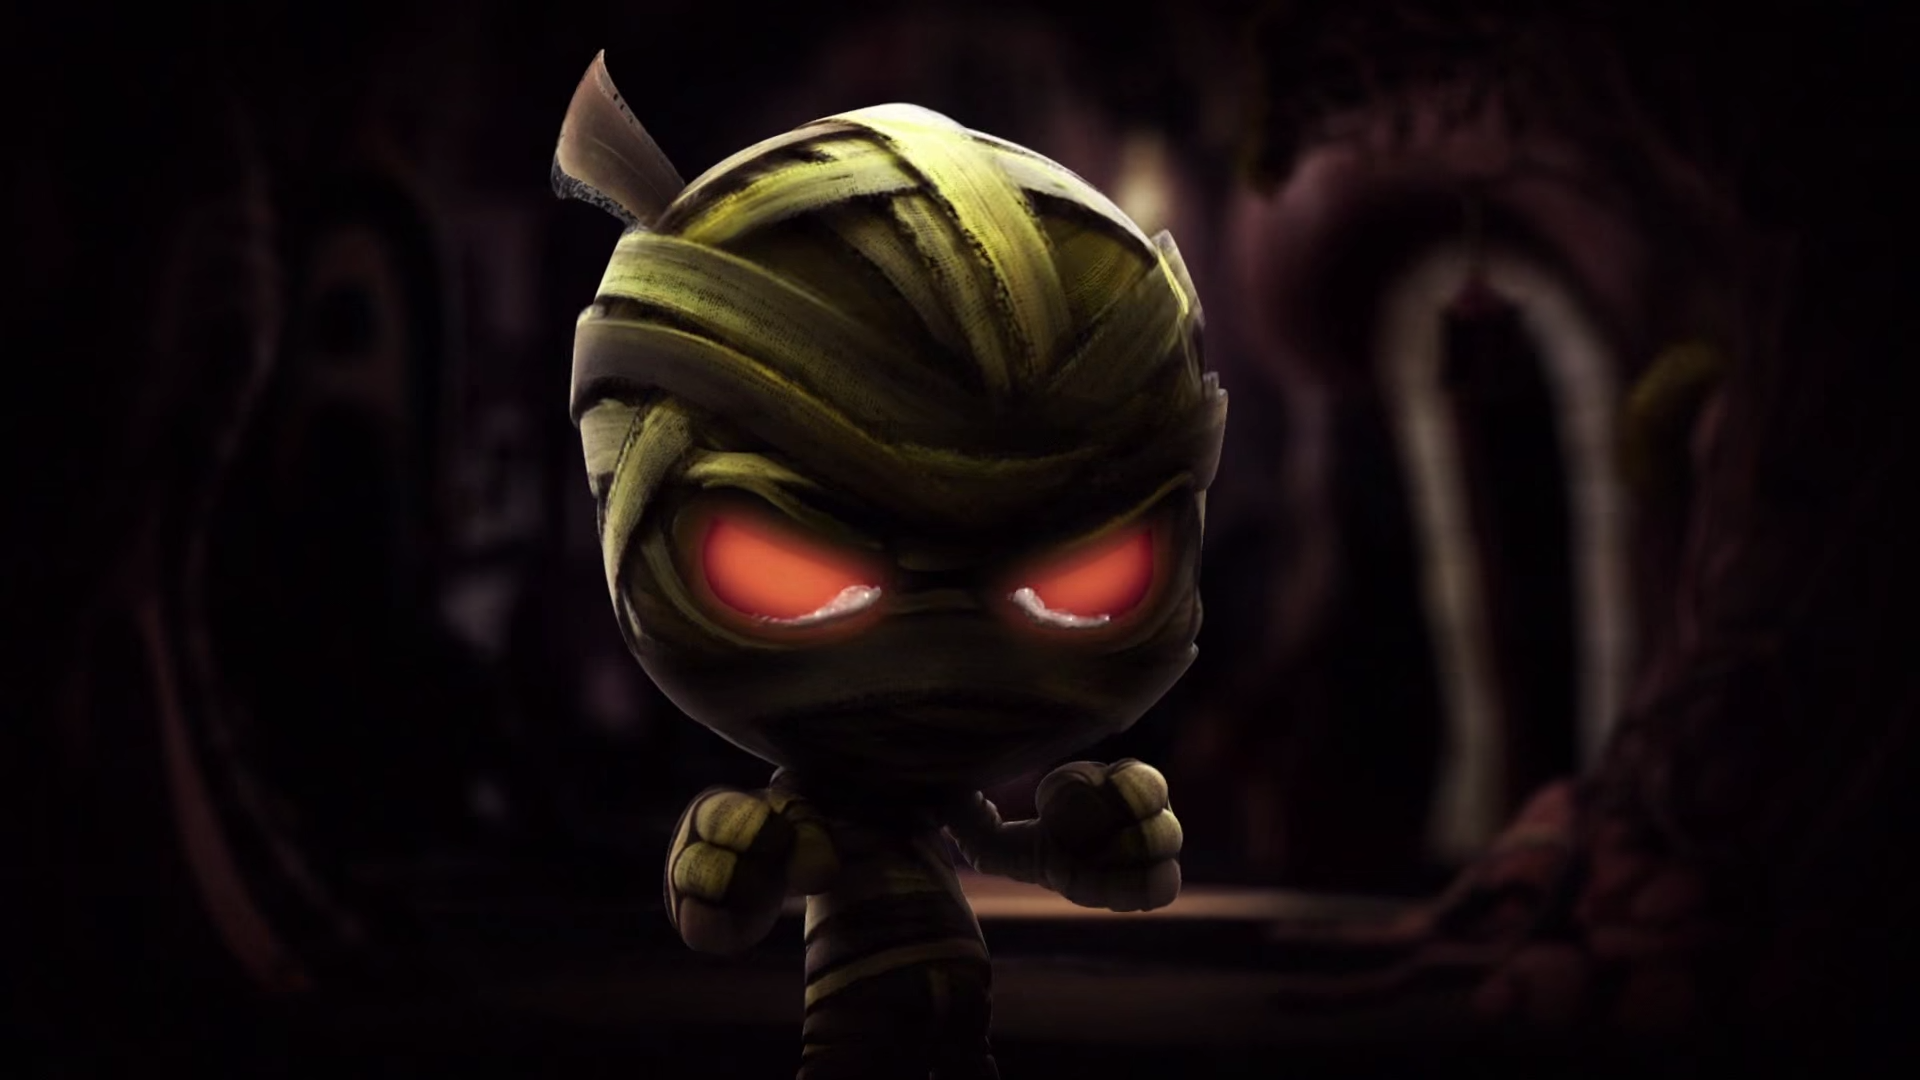 Amumu wallpaper